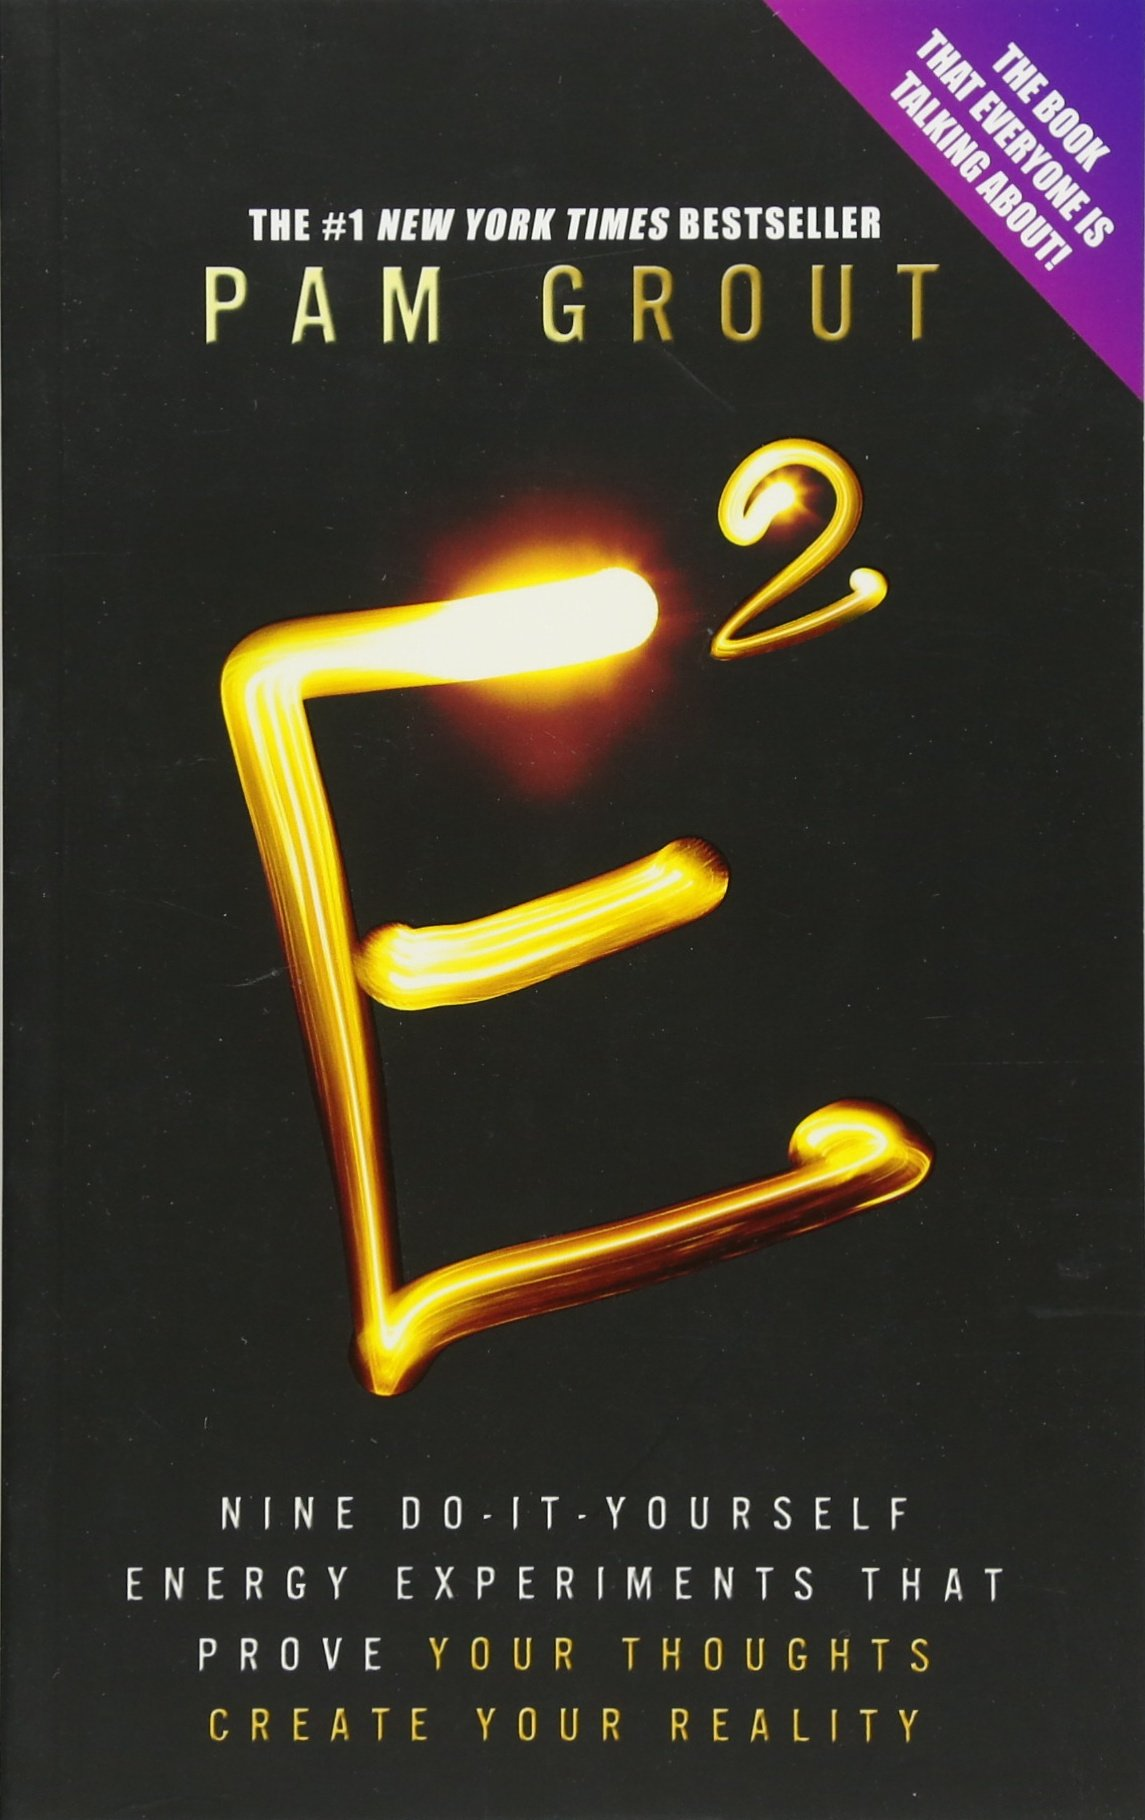 E squared nine do it yourself energy experiments that prove your e squared nine do it yourself energy experiments that prove your thoughts create your reality pam grout 8601200703429 amazon books solutioingenieria Gallery